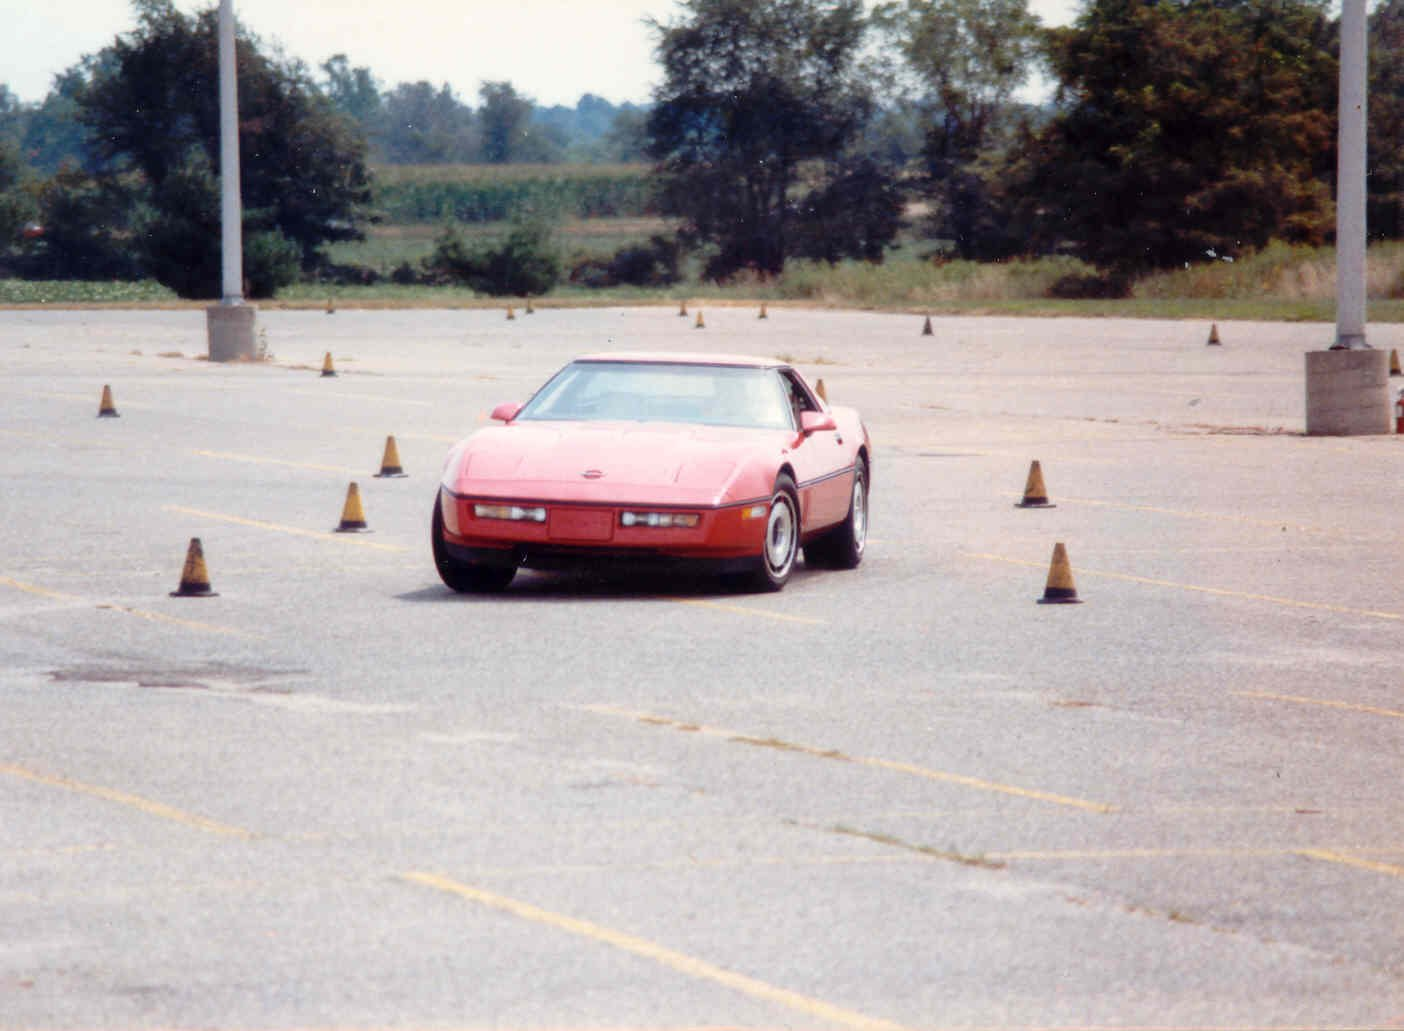 Me in the '84 Z51 during an autocross